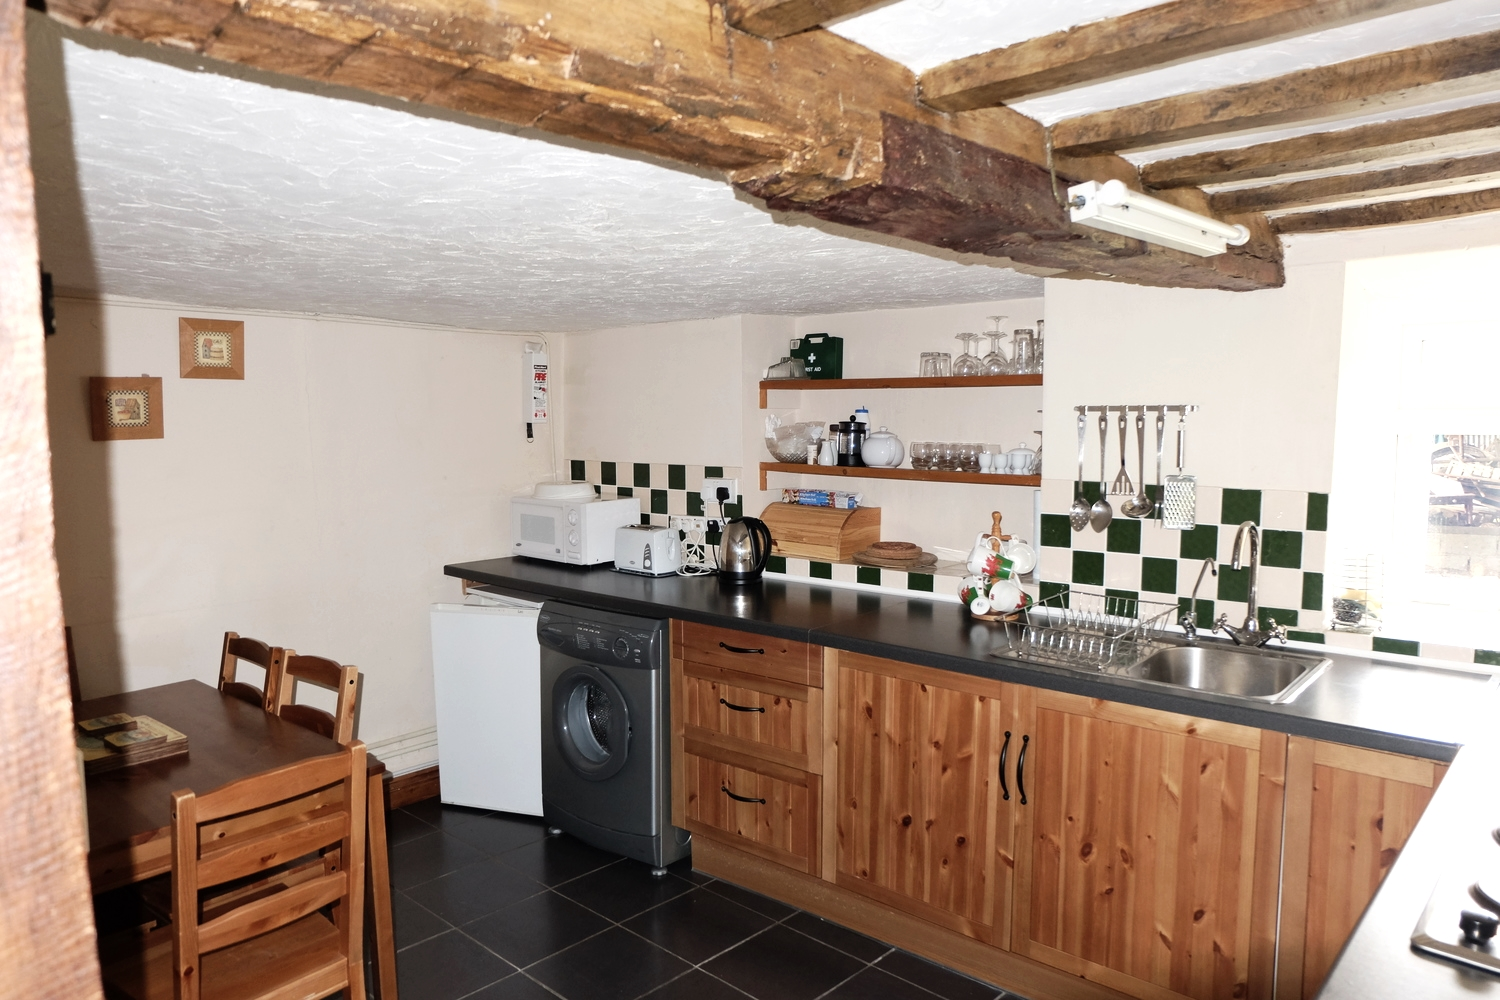 All main appliances are equipped within this spacious kitchen